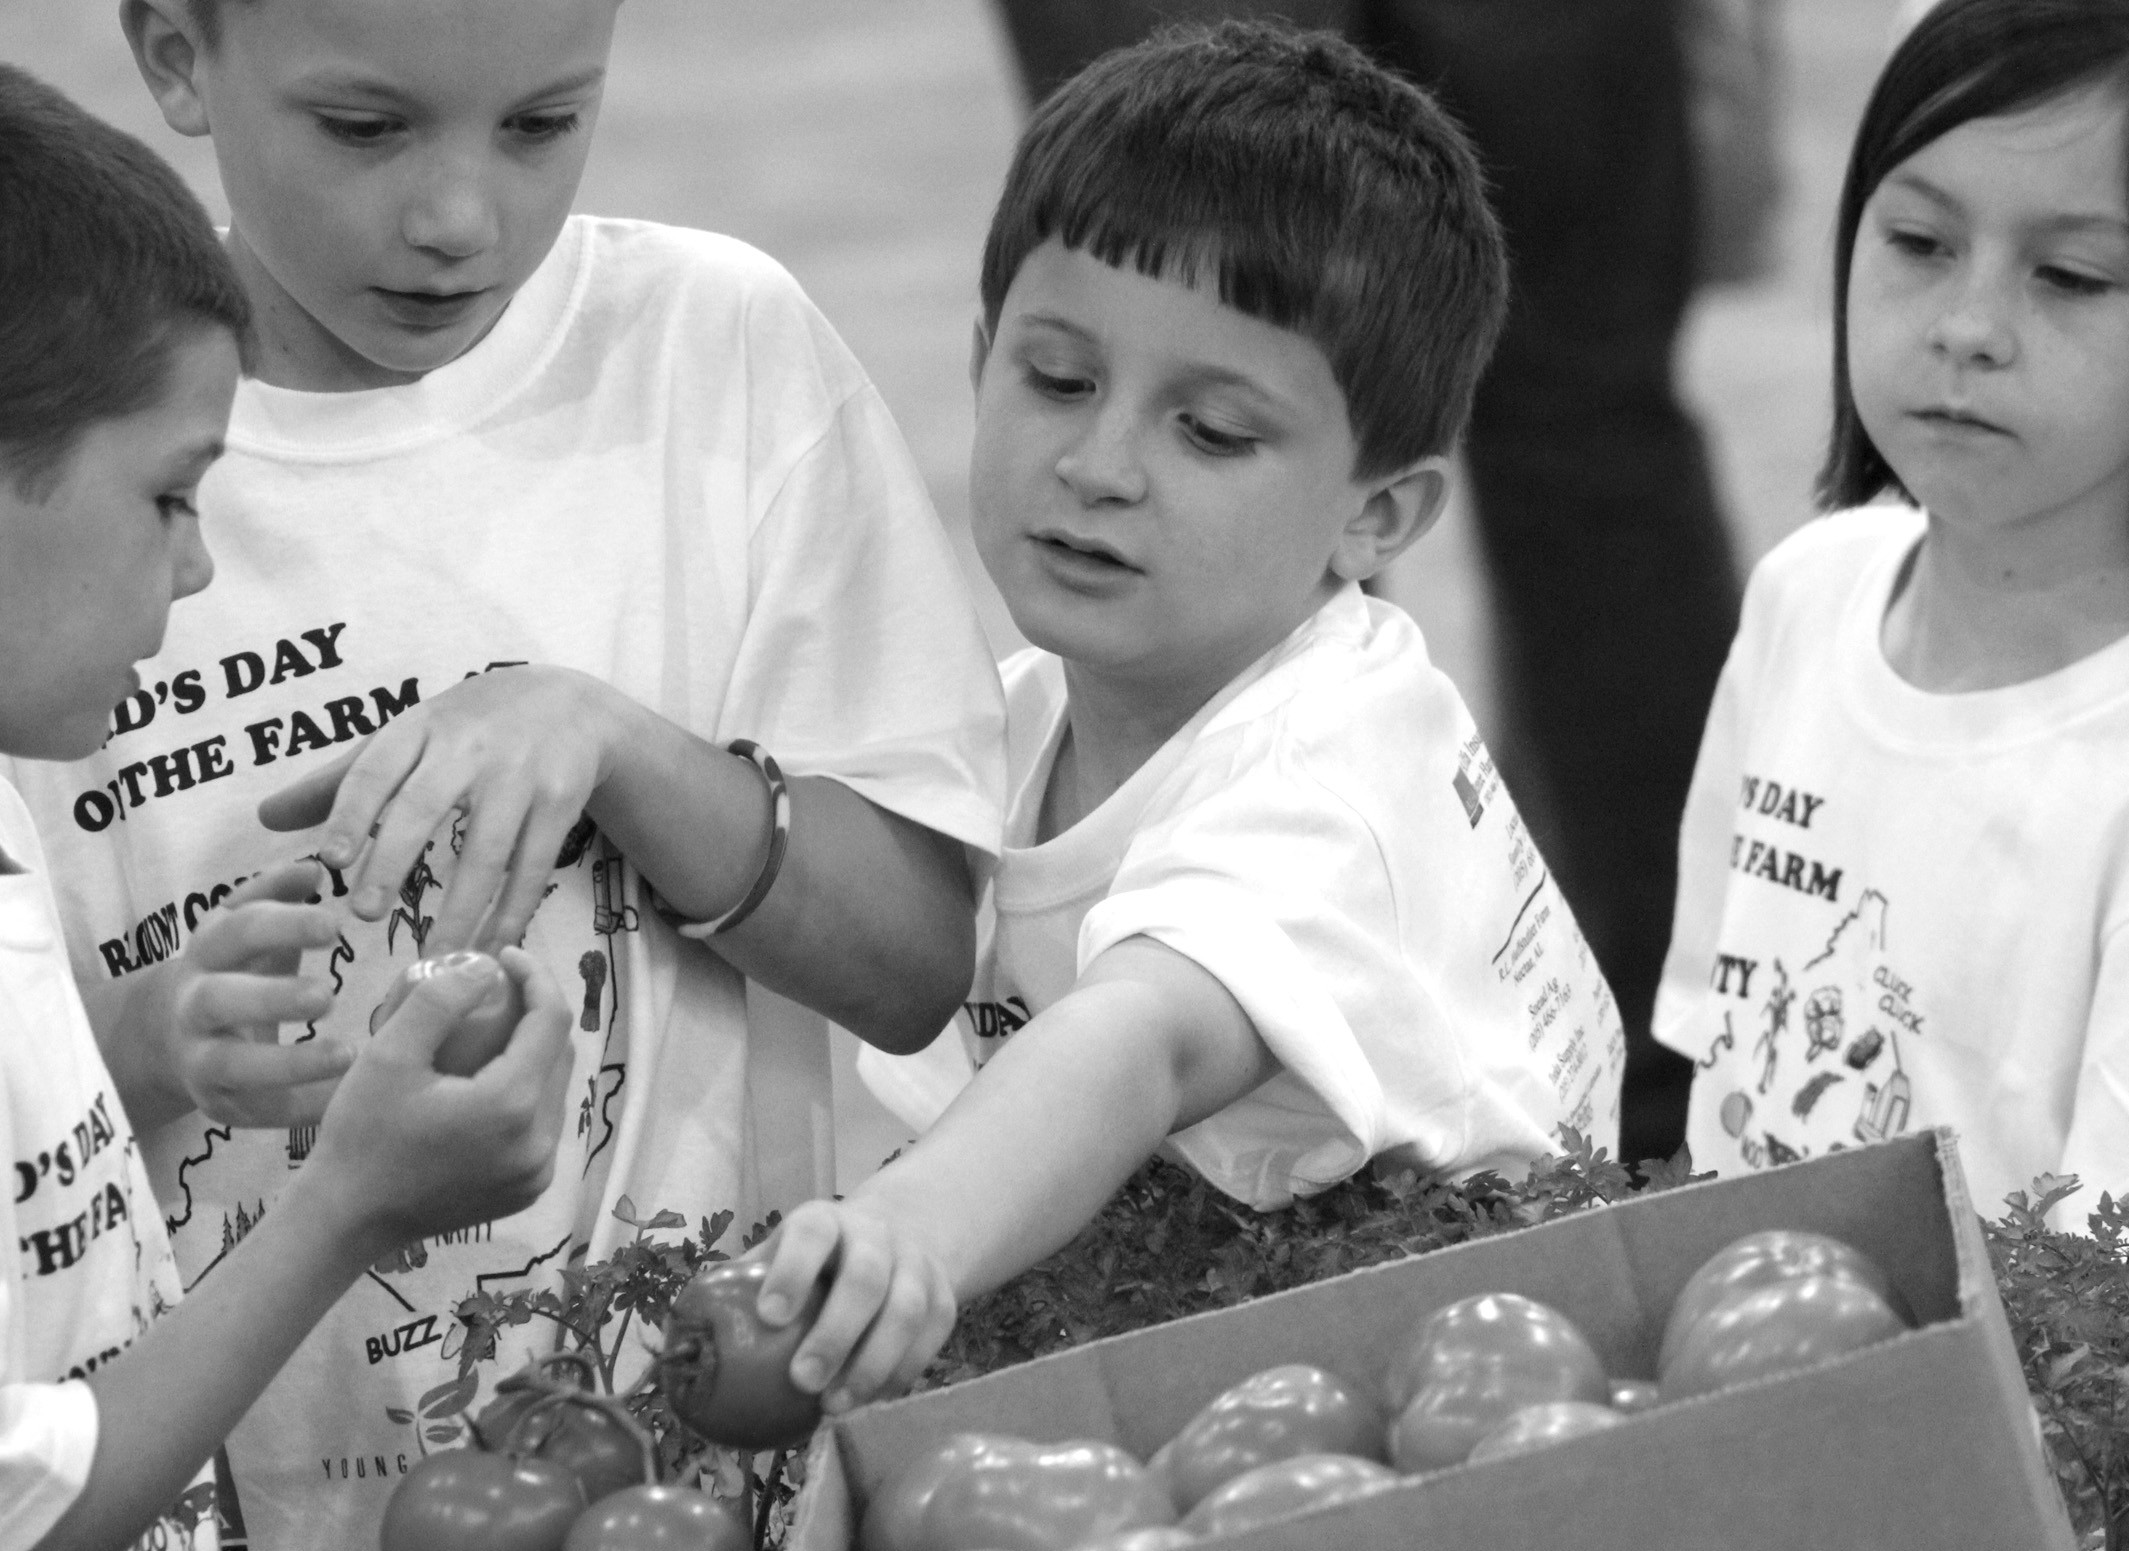 Hayden Primary School second graders, from left to right, Jordan Houston, Reese Stewart, Hayden Posten, and Ivory Chaviers check out the produce during Kids Day on the Farm last week at the Blount County-Oneonta Agri-Business Center. Students throughout the county were invited to the event to learn about livestock, sheep shearing, honeybees, farming equipment, soil, and many other farm-related topics. Kids Day on the Farm was sponsored by the Blount County Young Farmers, Women's Leadership Committee, the Farmers Federation, along with county ag teachers, the FFA, and the FCCLA. – Nicole Singleton